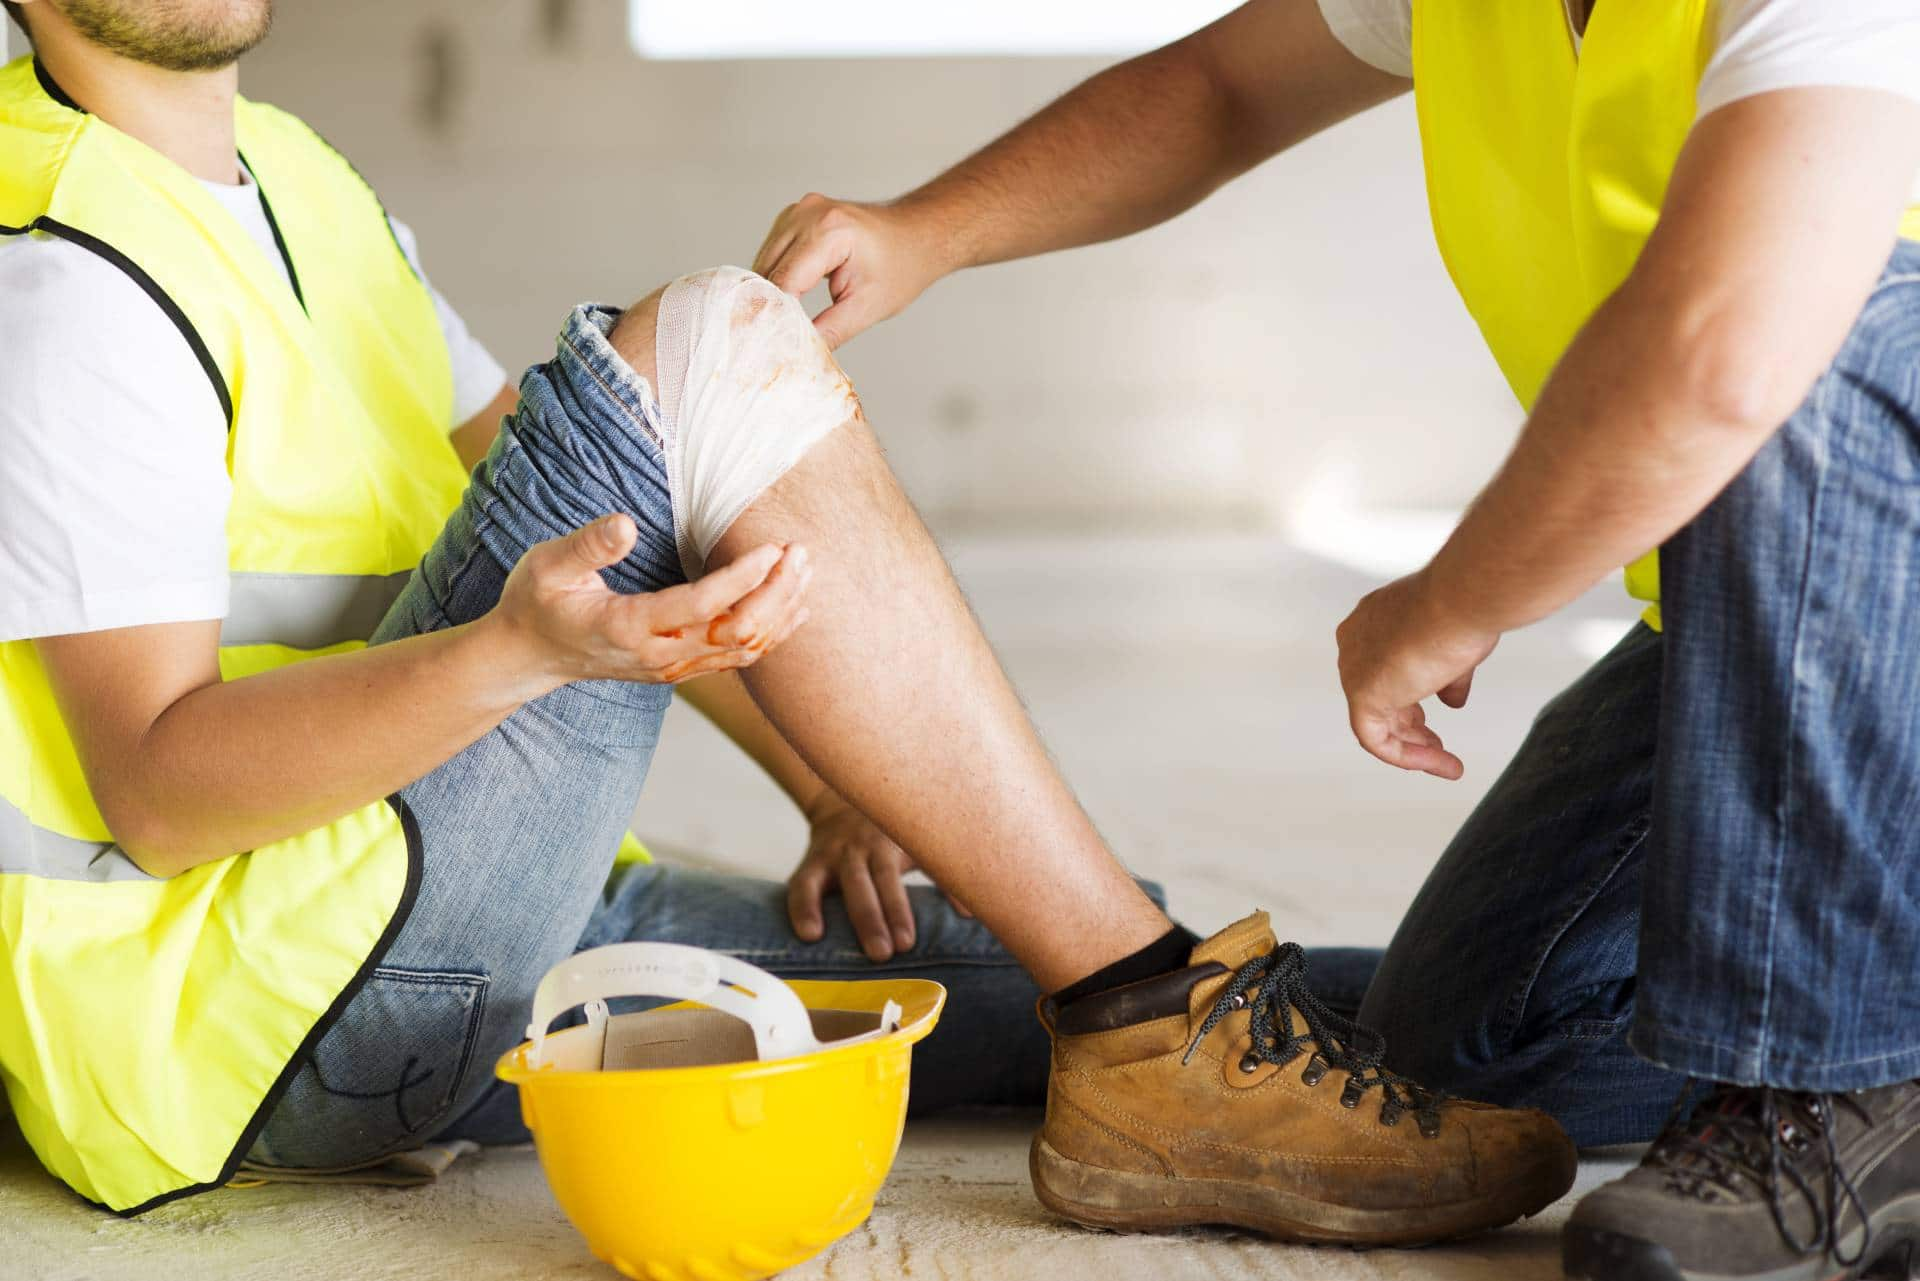 Hurt on the job? Visit an Angell Law Firm Personal Injury Lawyer for a free consultation.